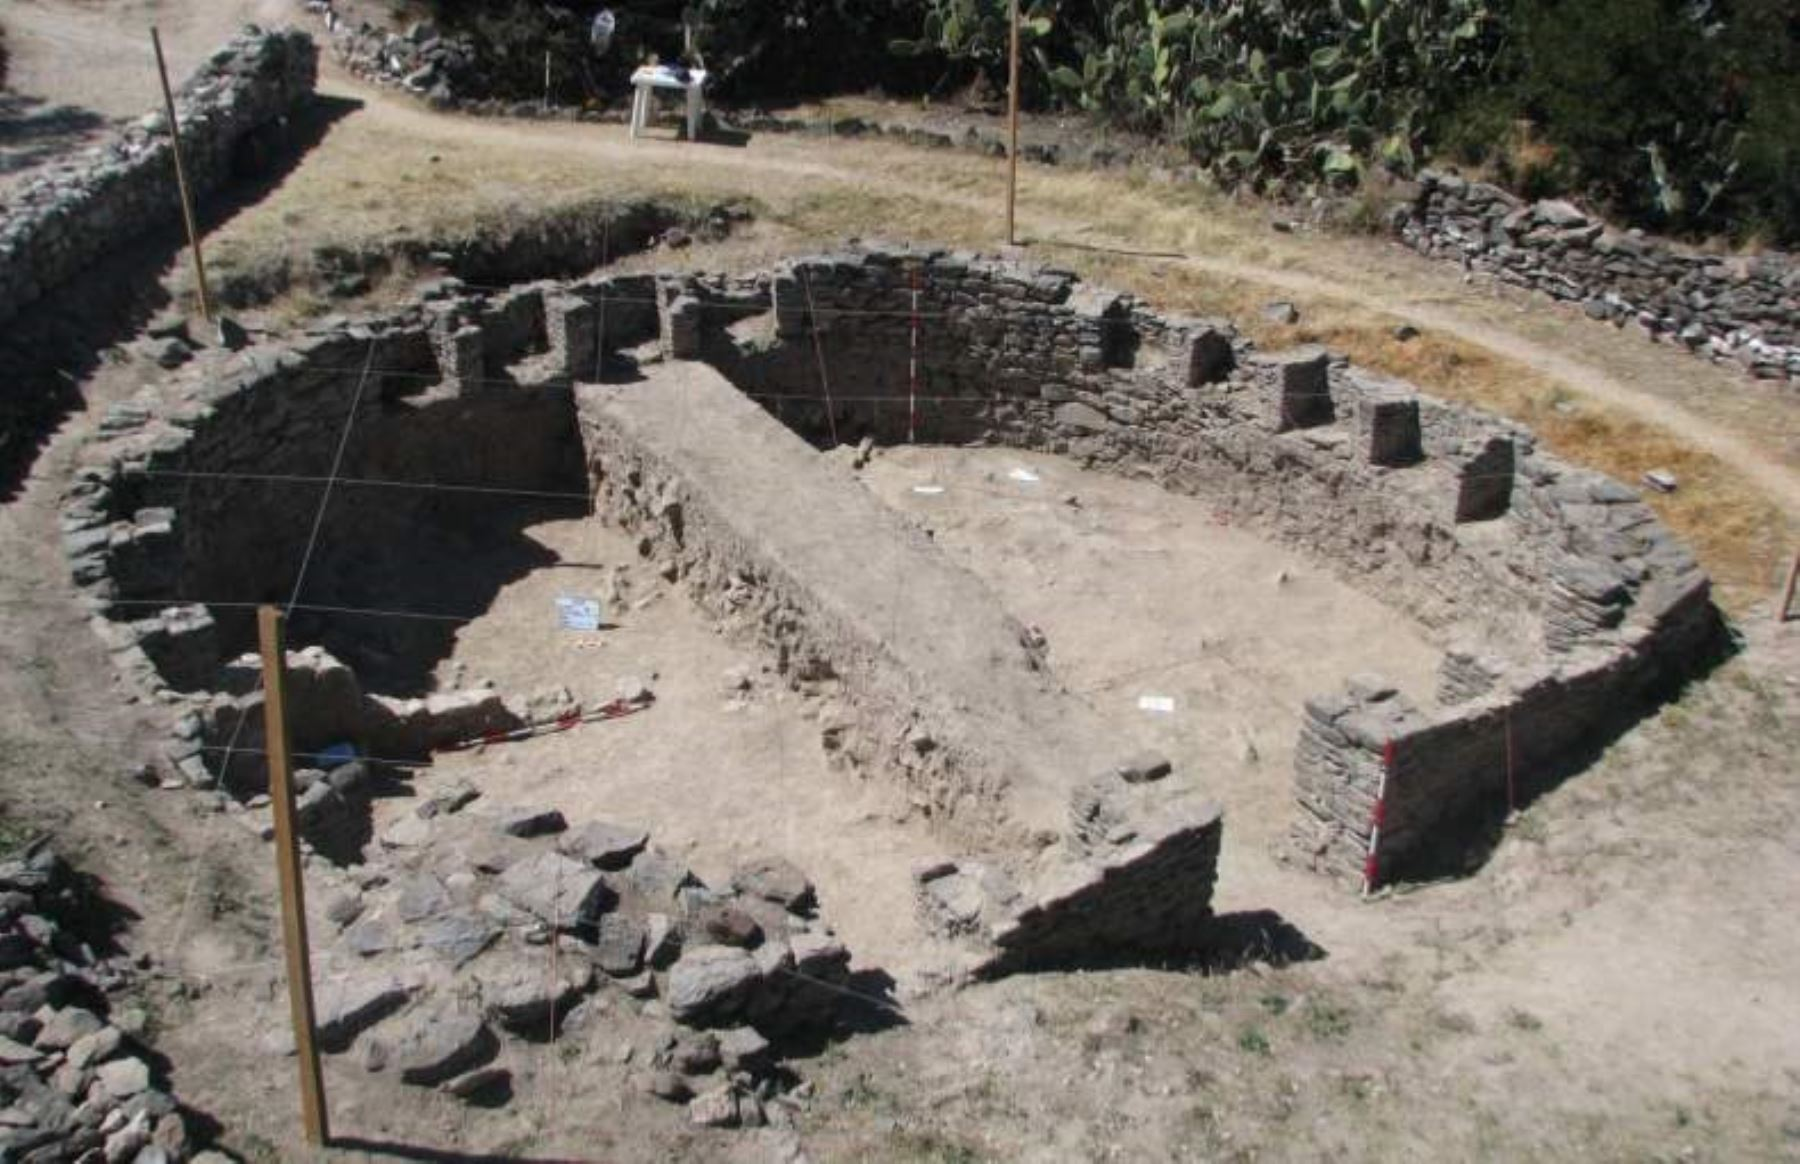 New archaeological finds uncovered at Wari complex in Peru.